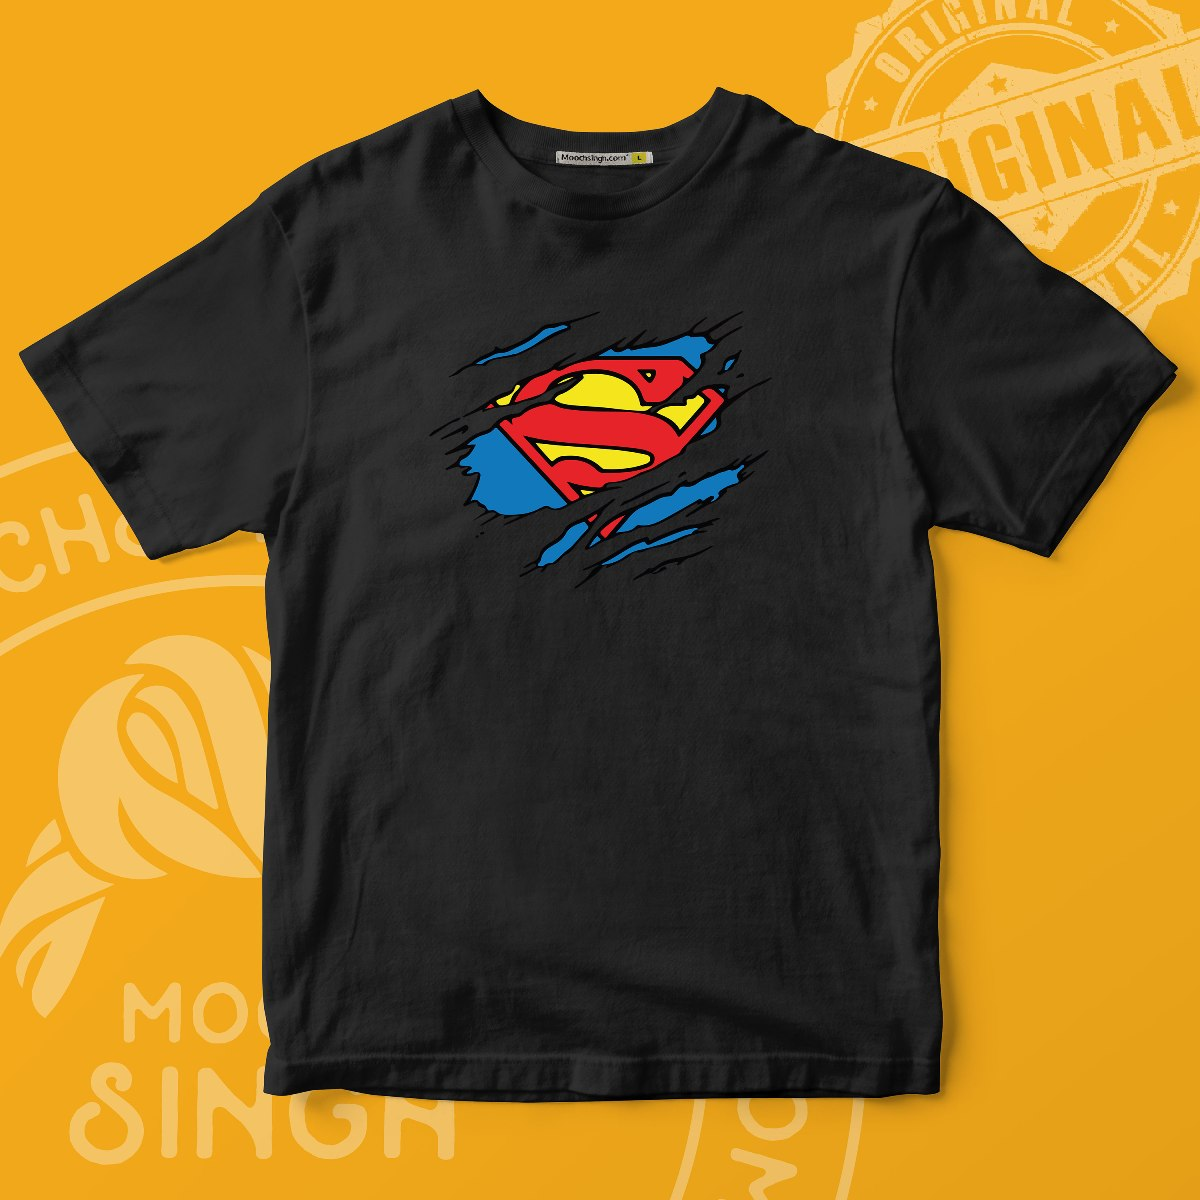 DC COMICS SUPERHERO SUPERMAN RIPPED CHEST LOGO PRINTED RED ROUND NECK T-SHIRT BY HOUSE OF MOOCHSINGH.COM